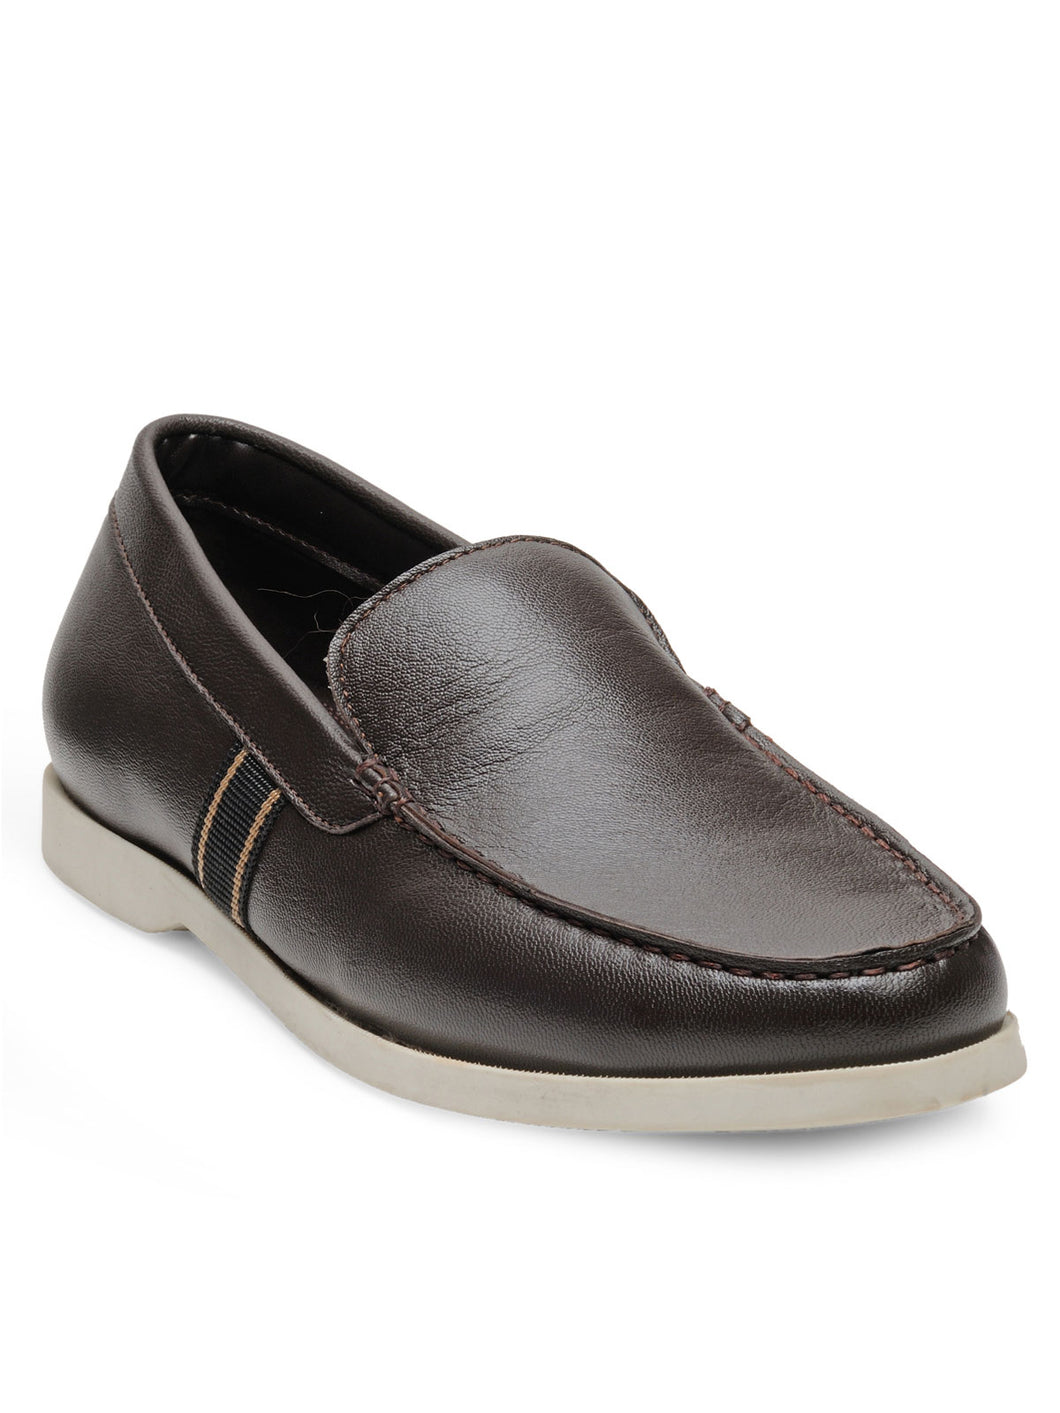 Teakwood Leather Men's Brown Slip-ons Shoes